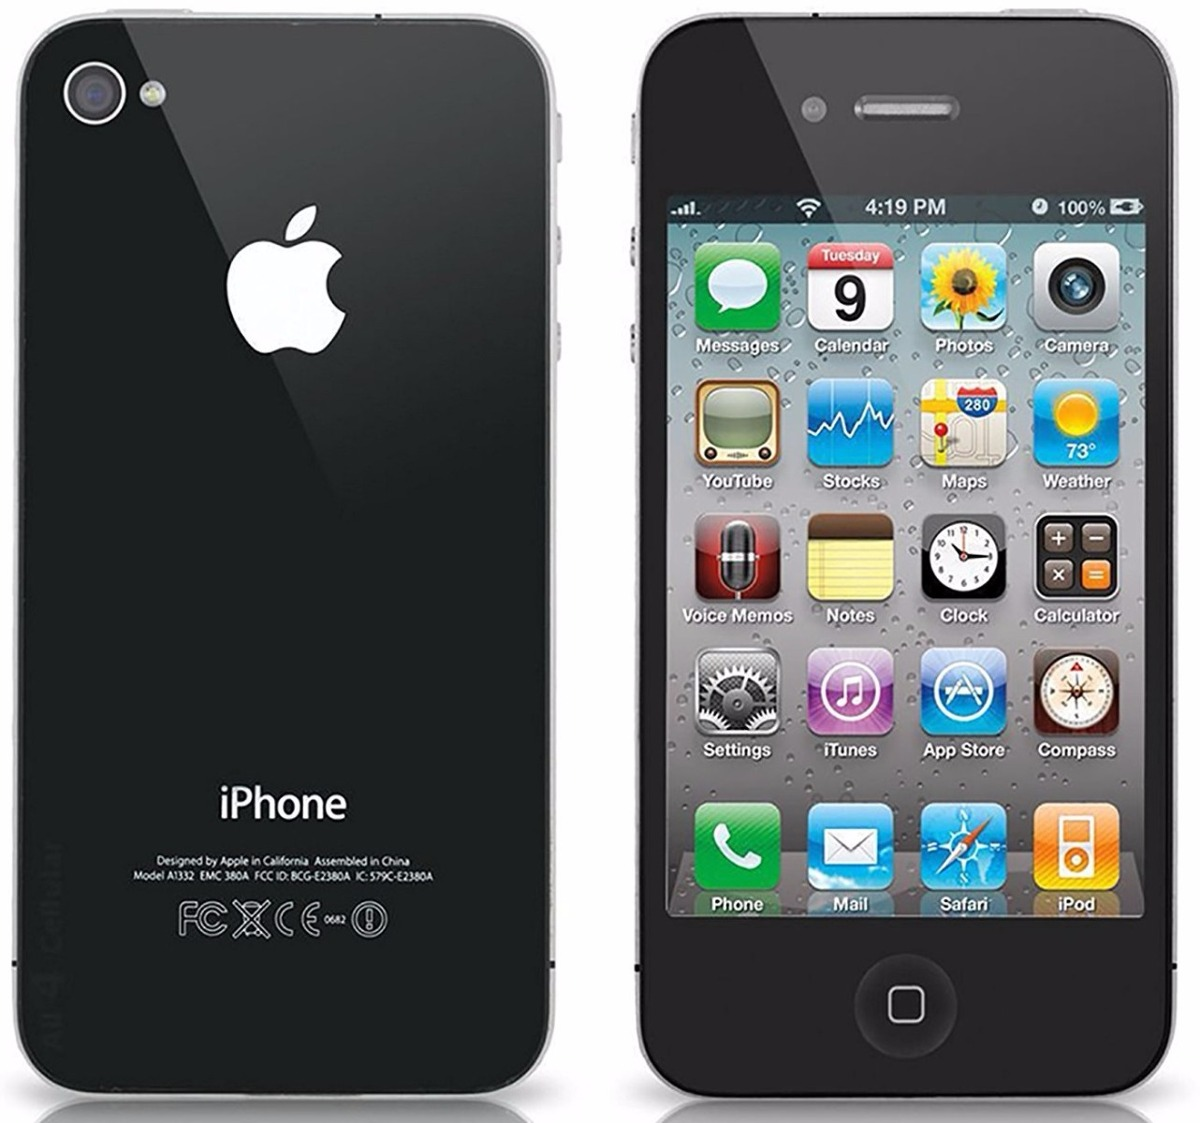 Iphone 4 Comprar Libre Apple Iphone 4 A1332 512mb 8gb 699 000 En Mercado Libre